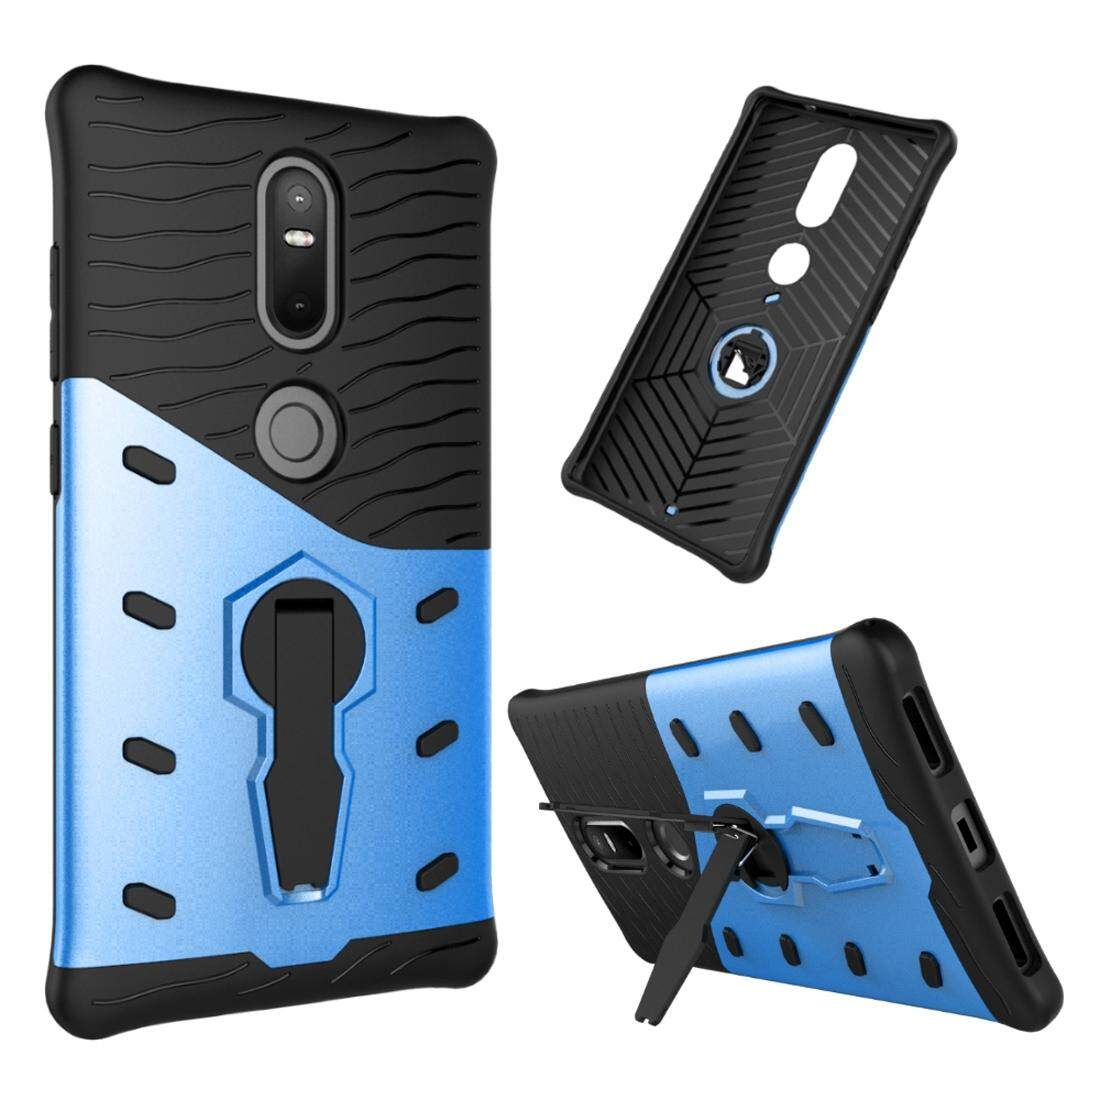 For Lenovo Phab2 Plus Shock-Resistant 360 Degree Spin Sniper Hybrid Case TPU + PC Combination Case with Holder(Blue) - intl